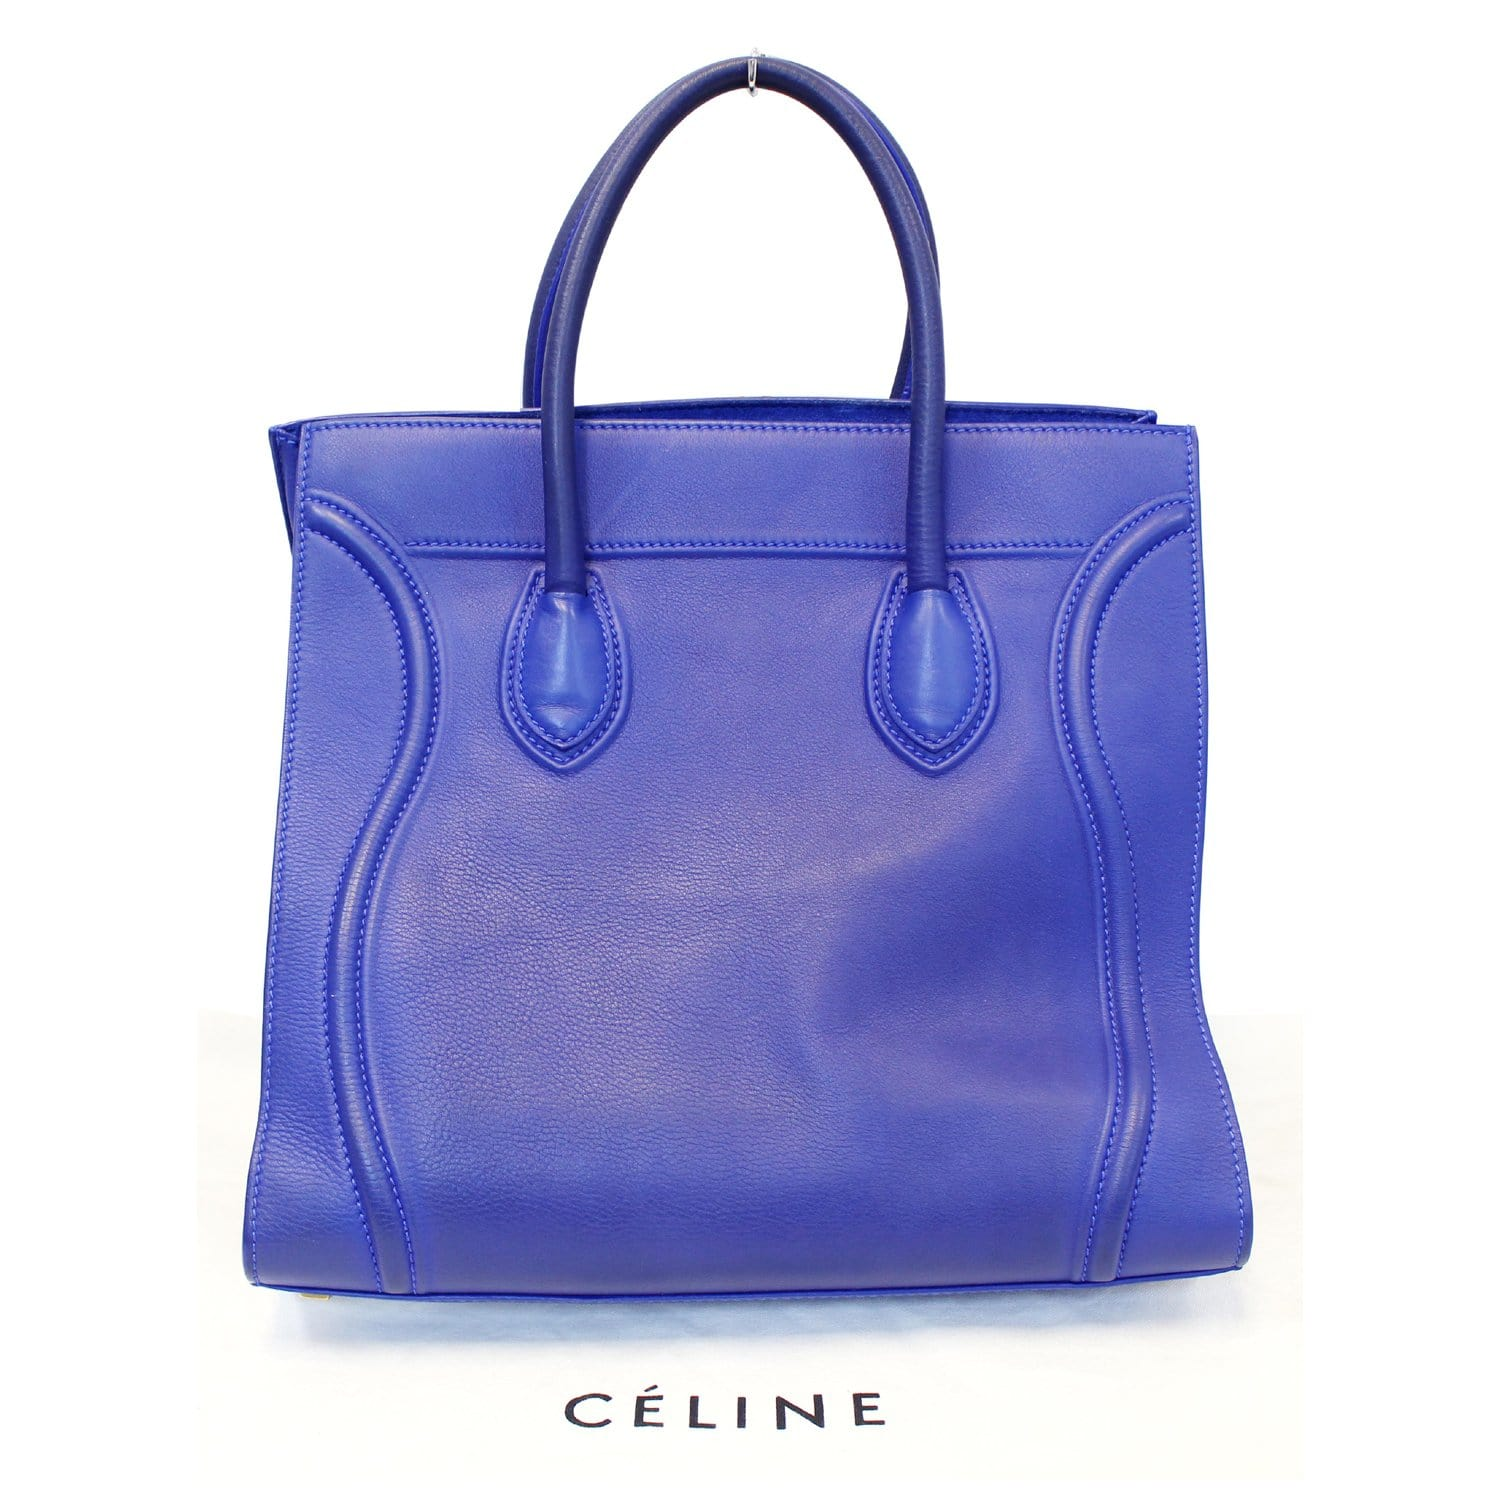 ca45dffbe76 CELINE Phantom Luggage Medium Blue Leather Tote Bag-US